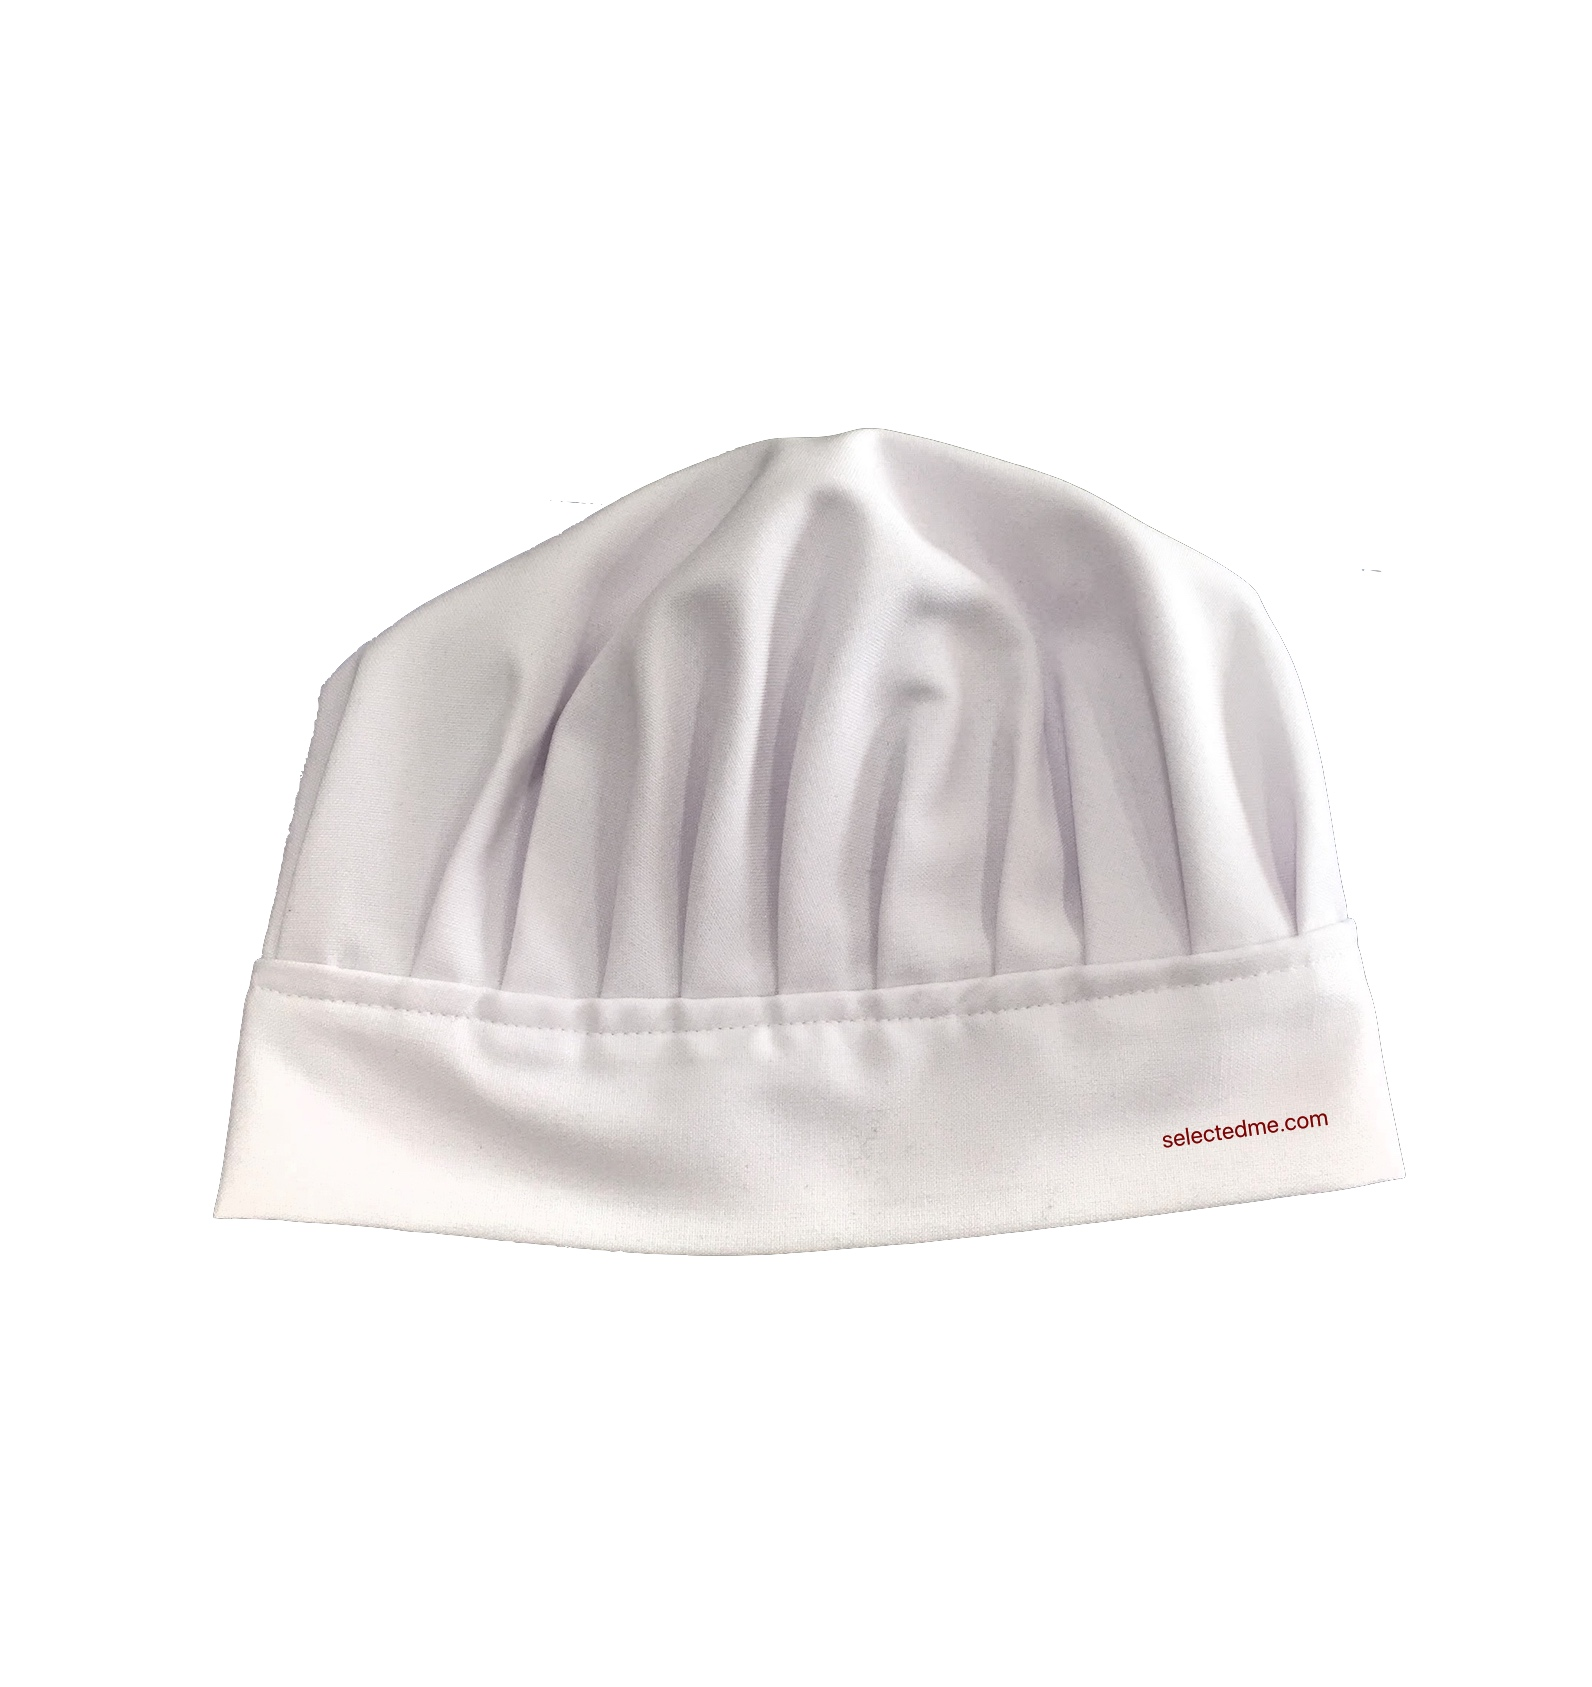 Kids Chef Hats - Personalized Children Chef Uniforms